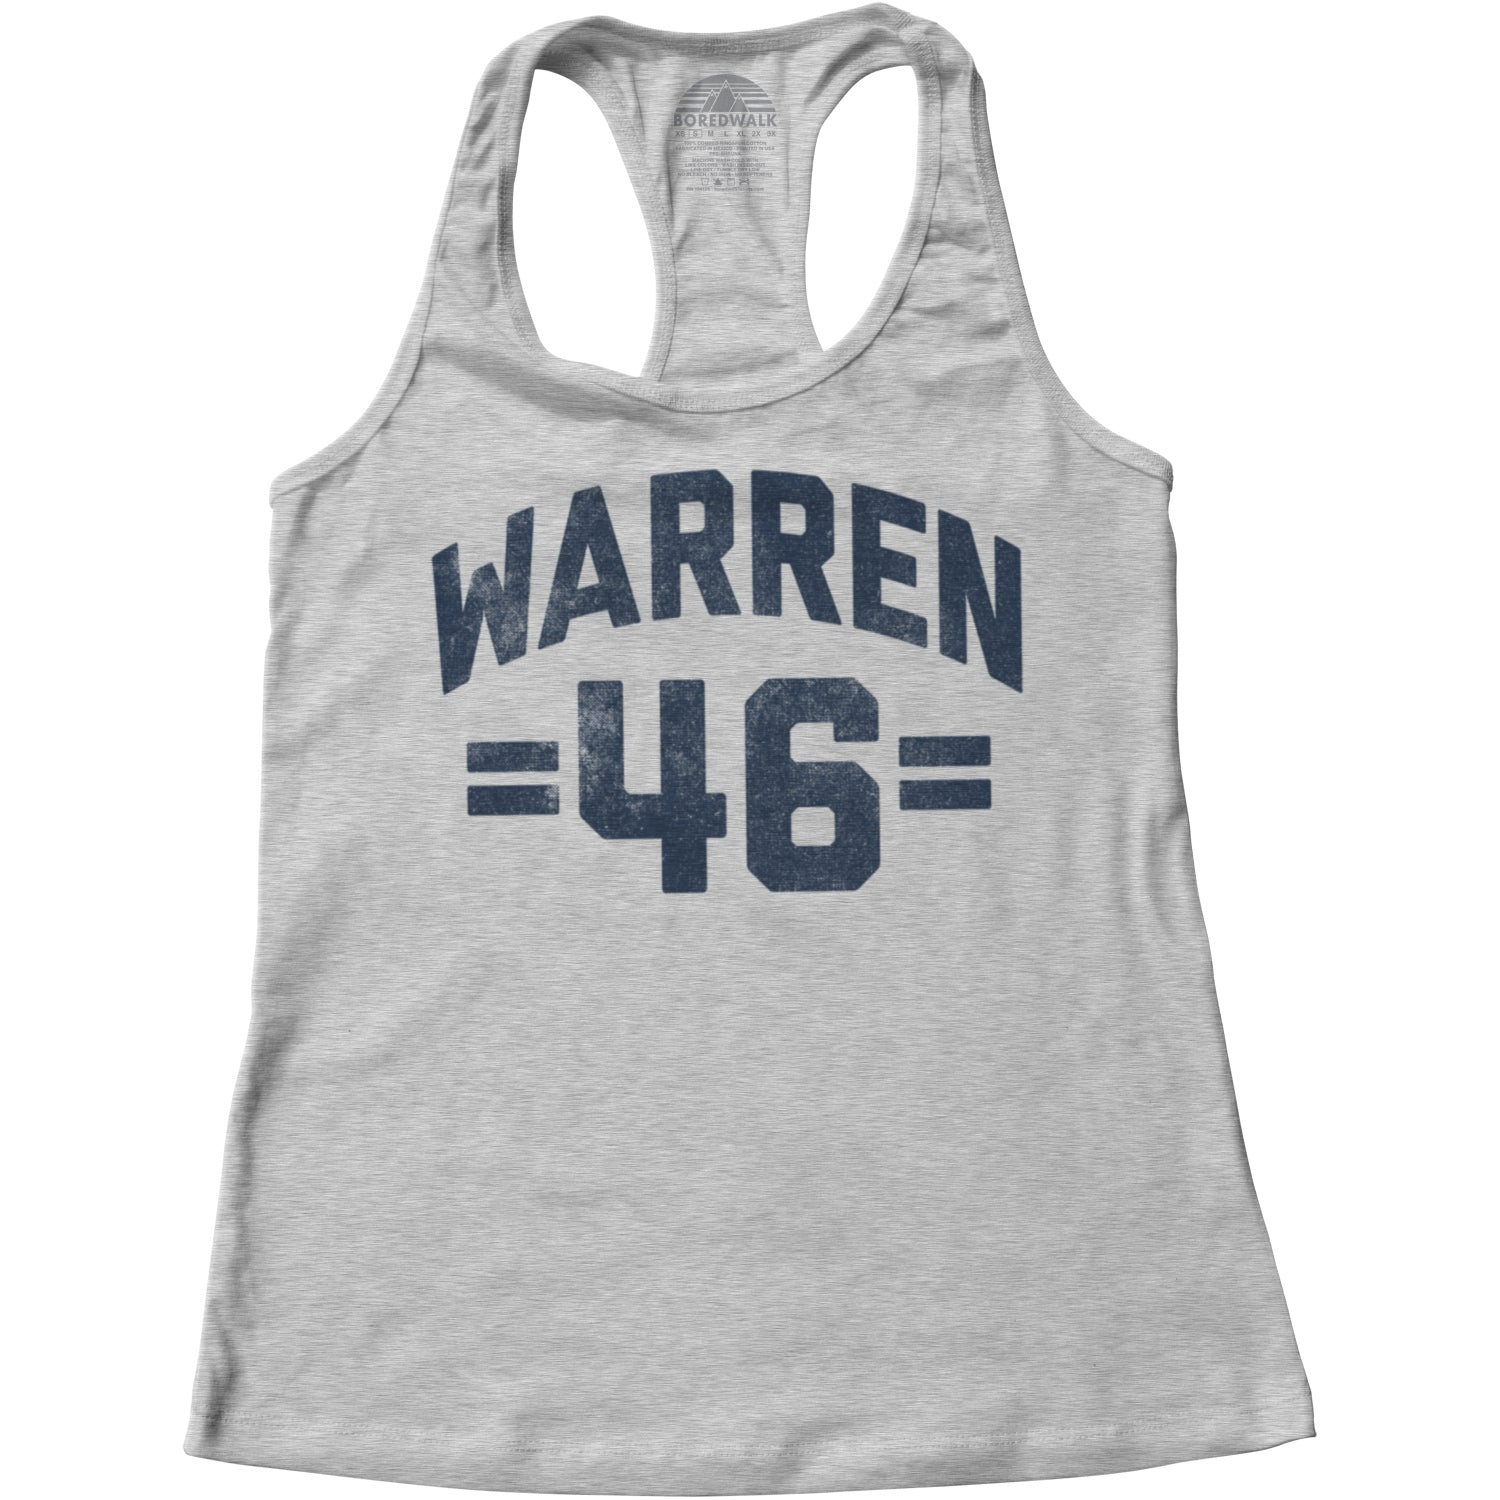 Women's Elizabeth Warren 46 Racerback Tank Top